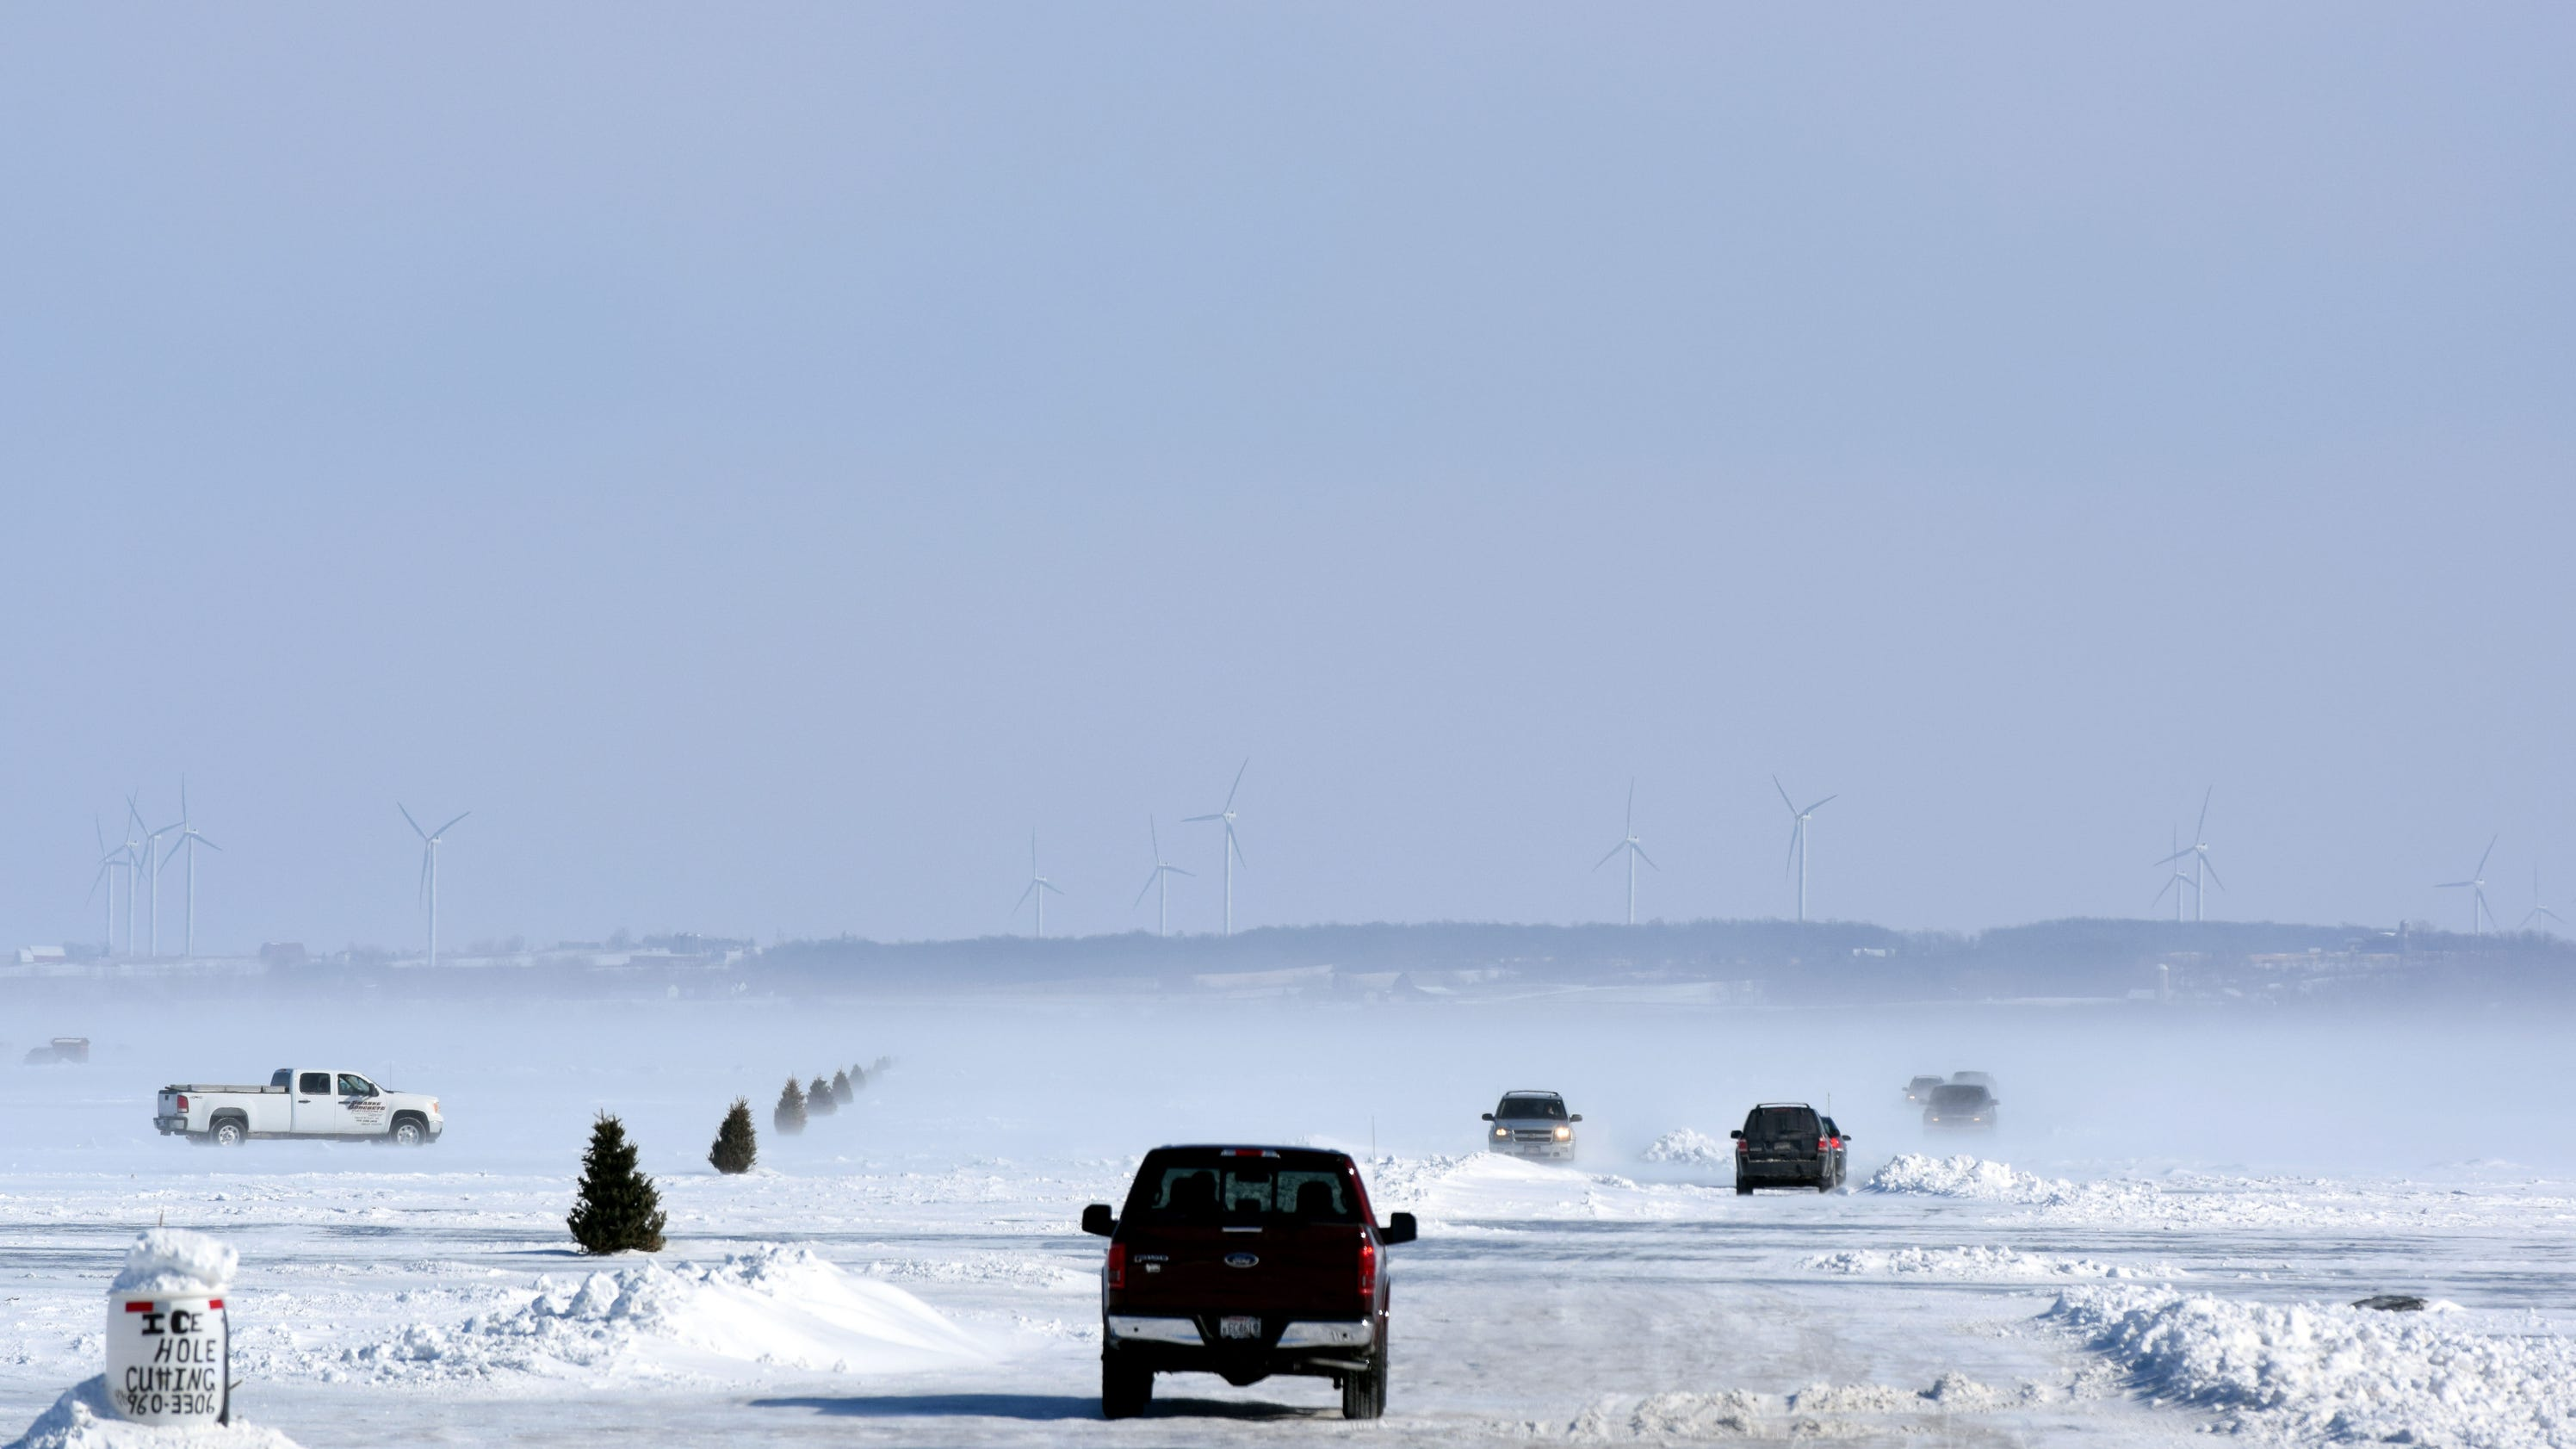 Lake winnebago ice conditions report for Ice fishing reports